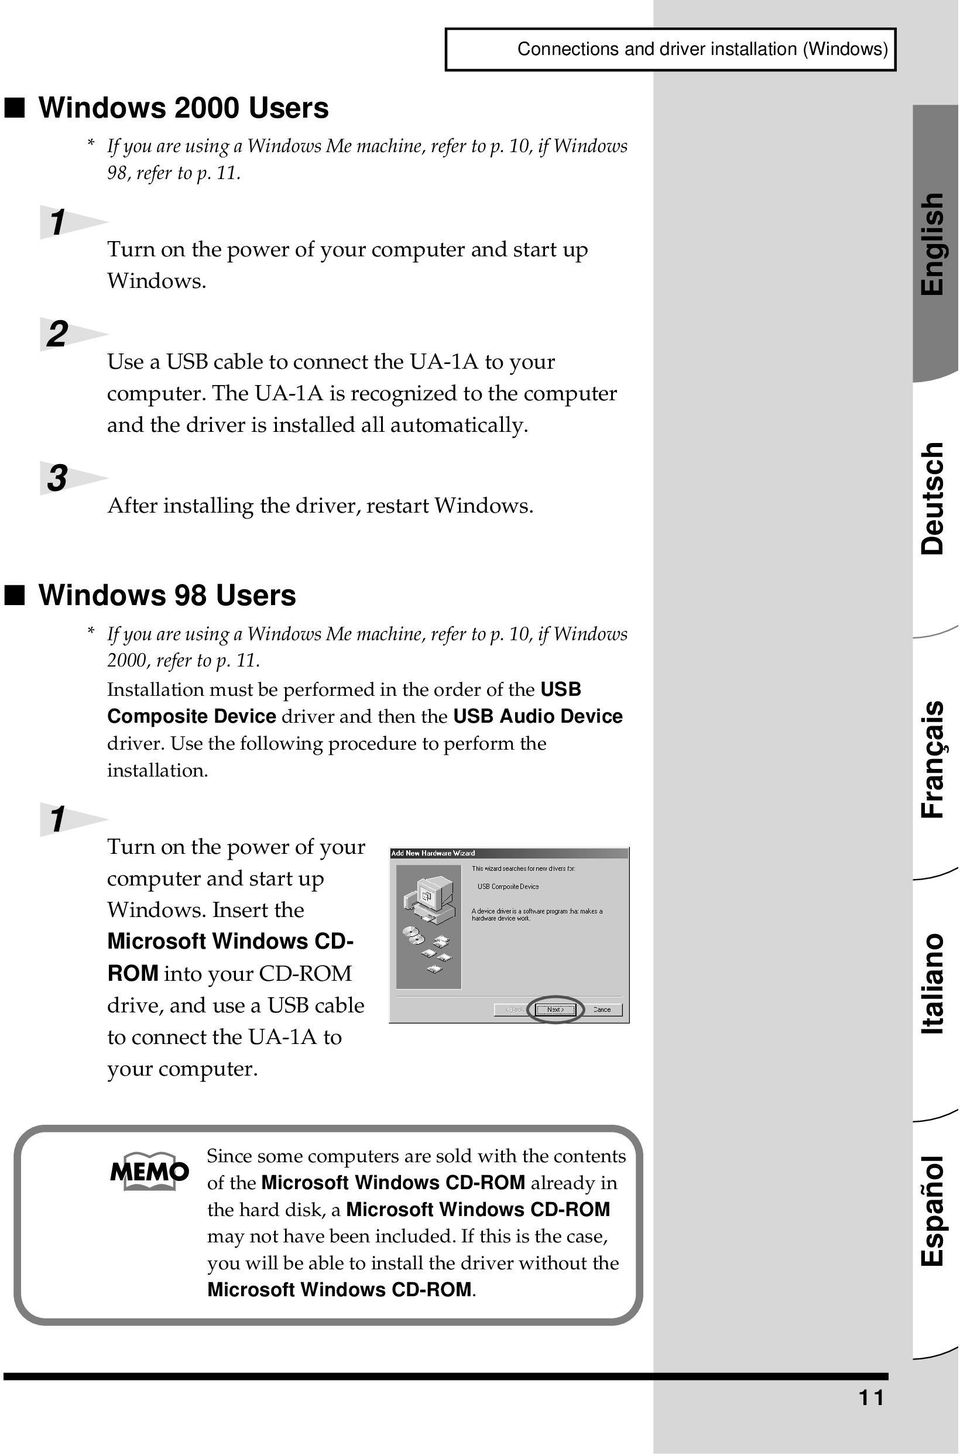 After installing the driver, restart Windows. Windows 98 Users fig.02-05.e 1 * If you are using a Windows Me machine, refer to p. 10, if Windows 2000, refer to p. 11.